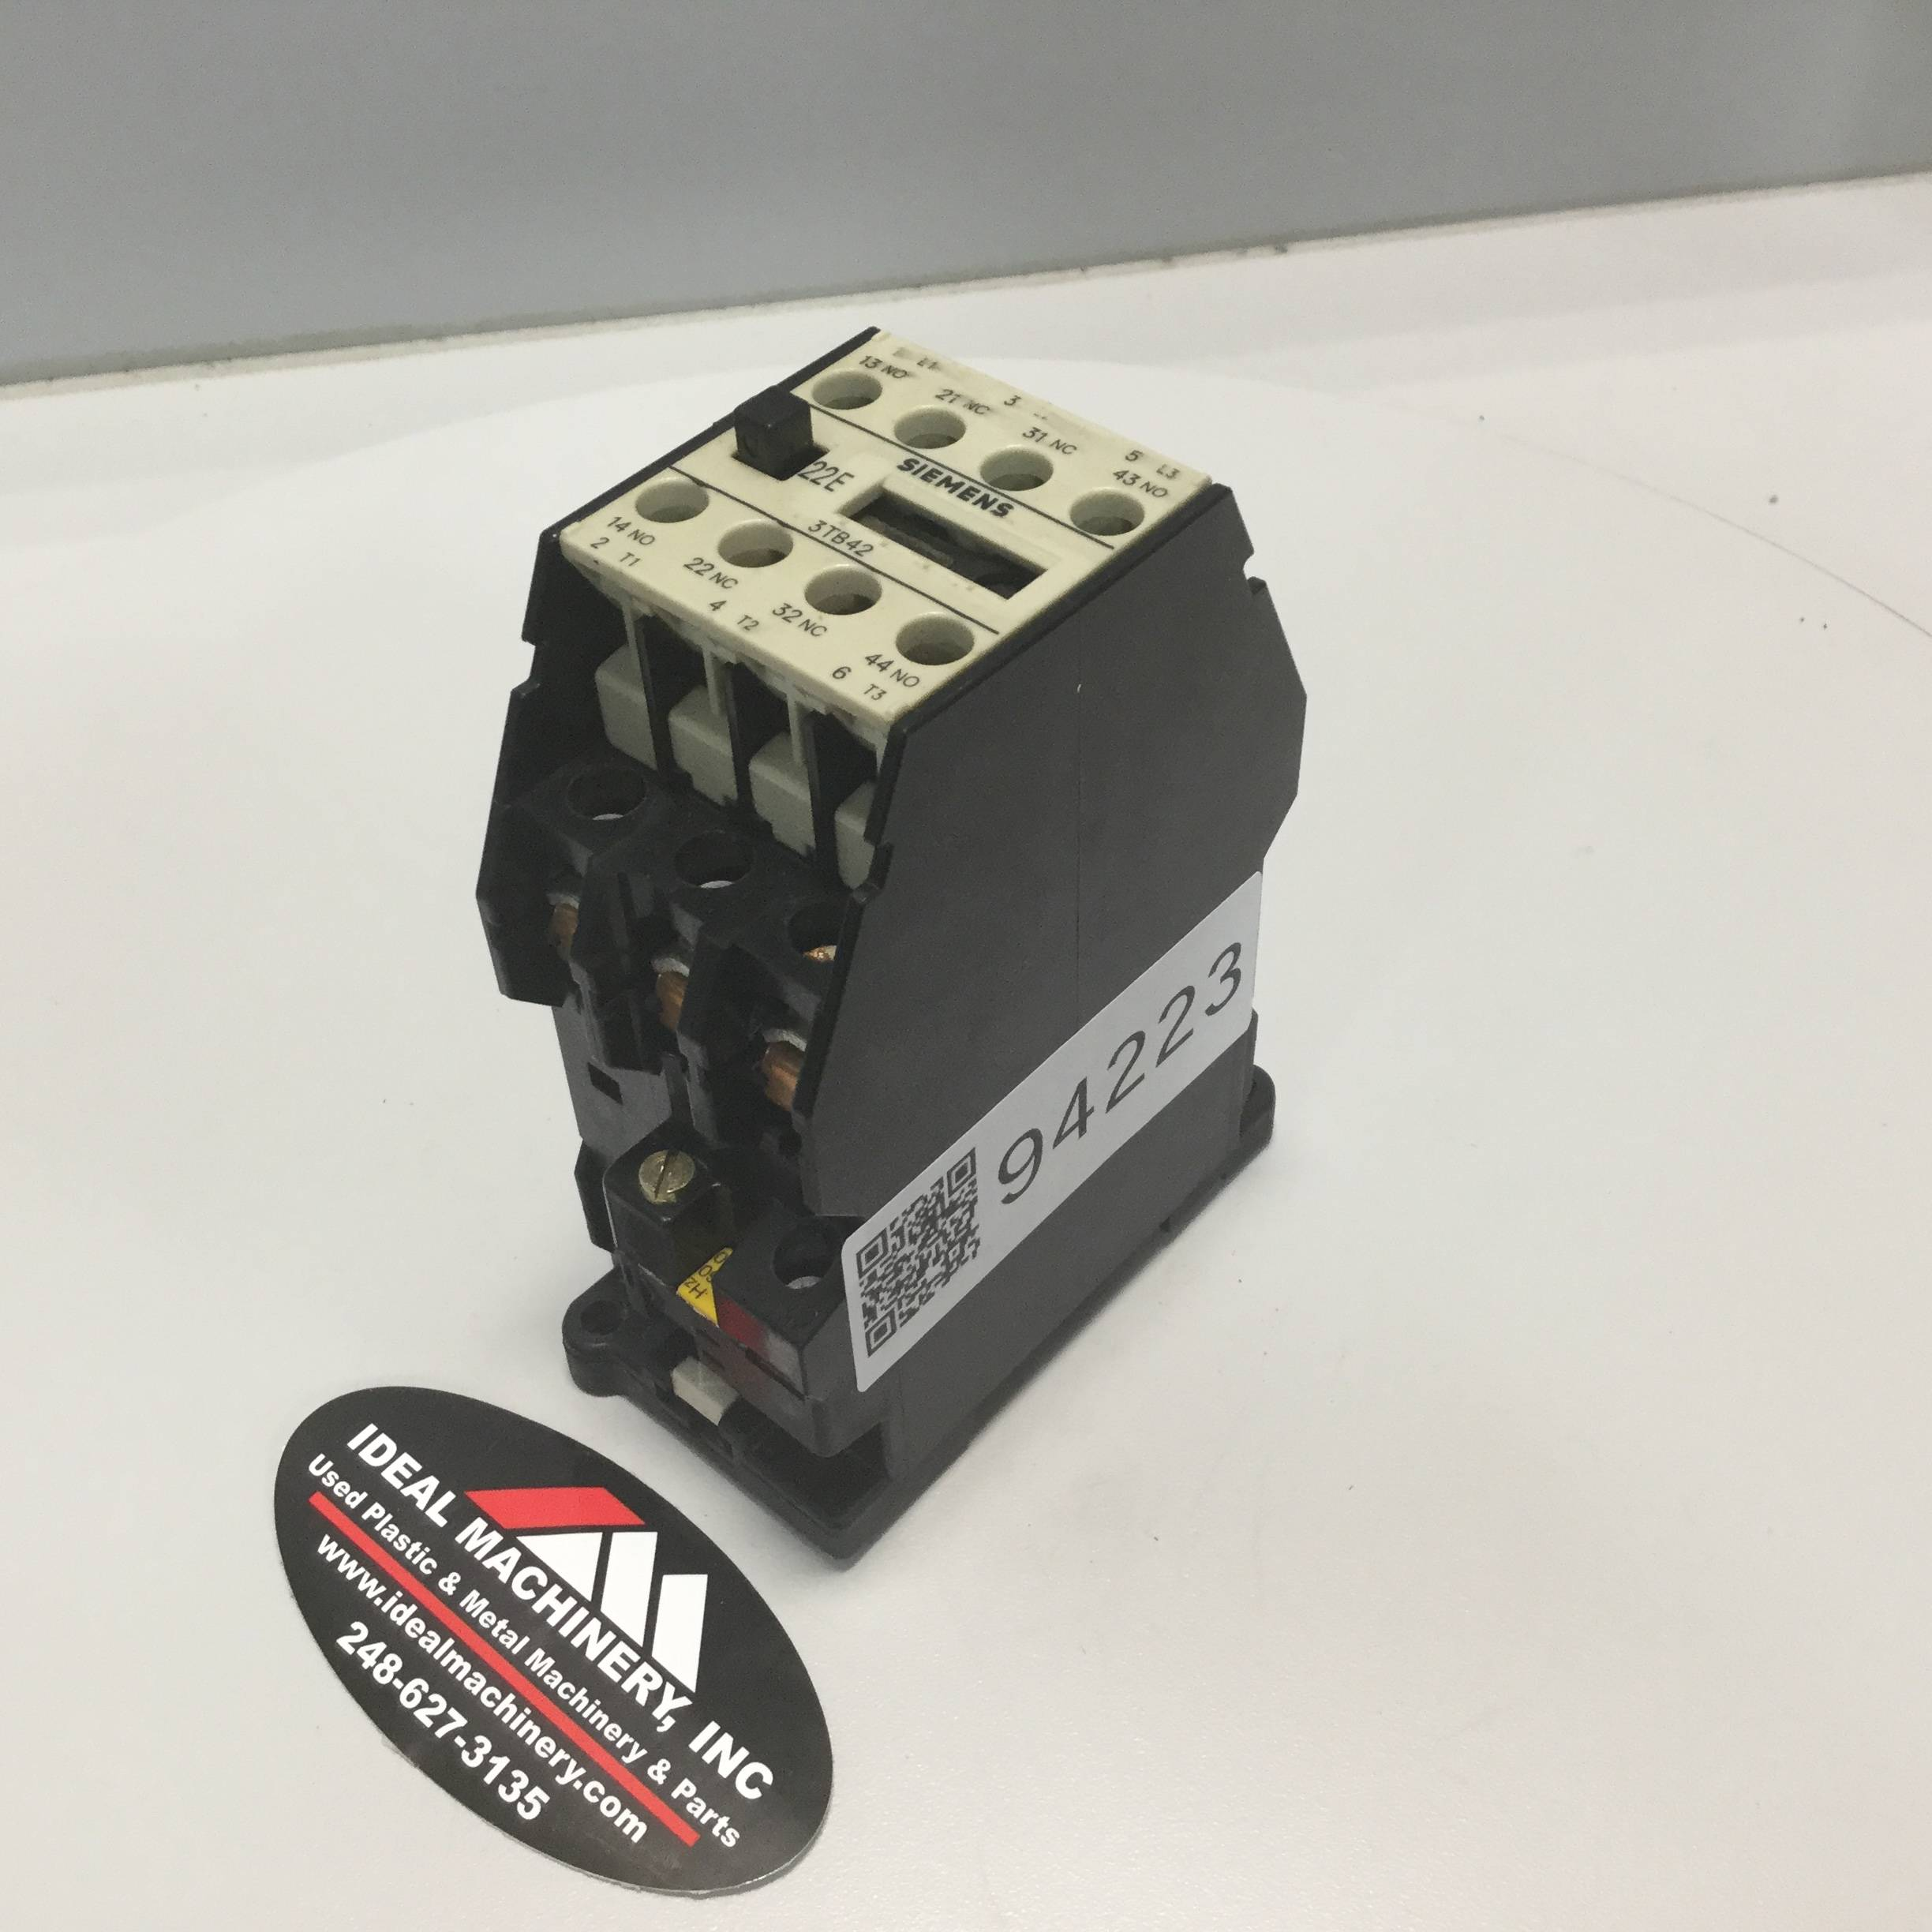 Image is loading Siemens Contactor 3TB4217 0A Used 94223 Siemens Contactor 3TB4217 0A